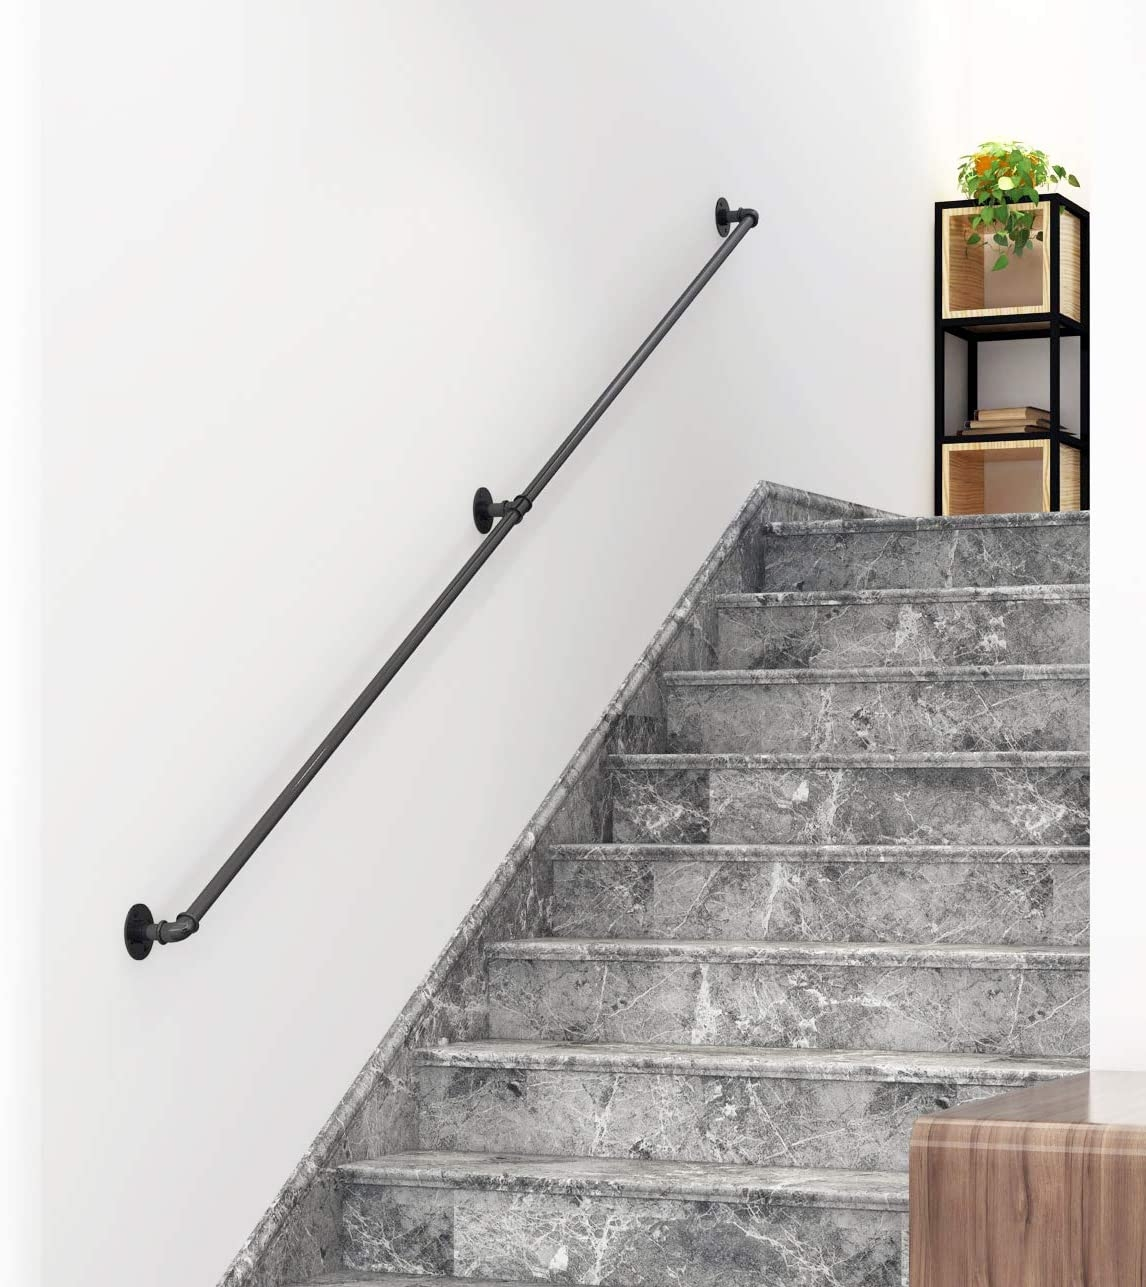 Diyhd 6 6Ft Stair Black Pipe Handrail With 3 Wall Mount Supports | Attaching Handrail To Wall | Stair Parts | Brick | Wood | Staircase | Scr*W